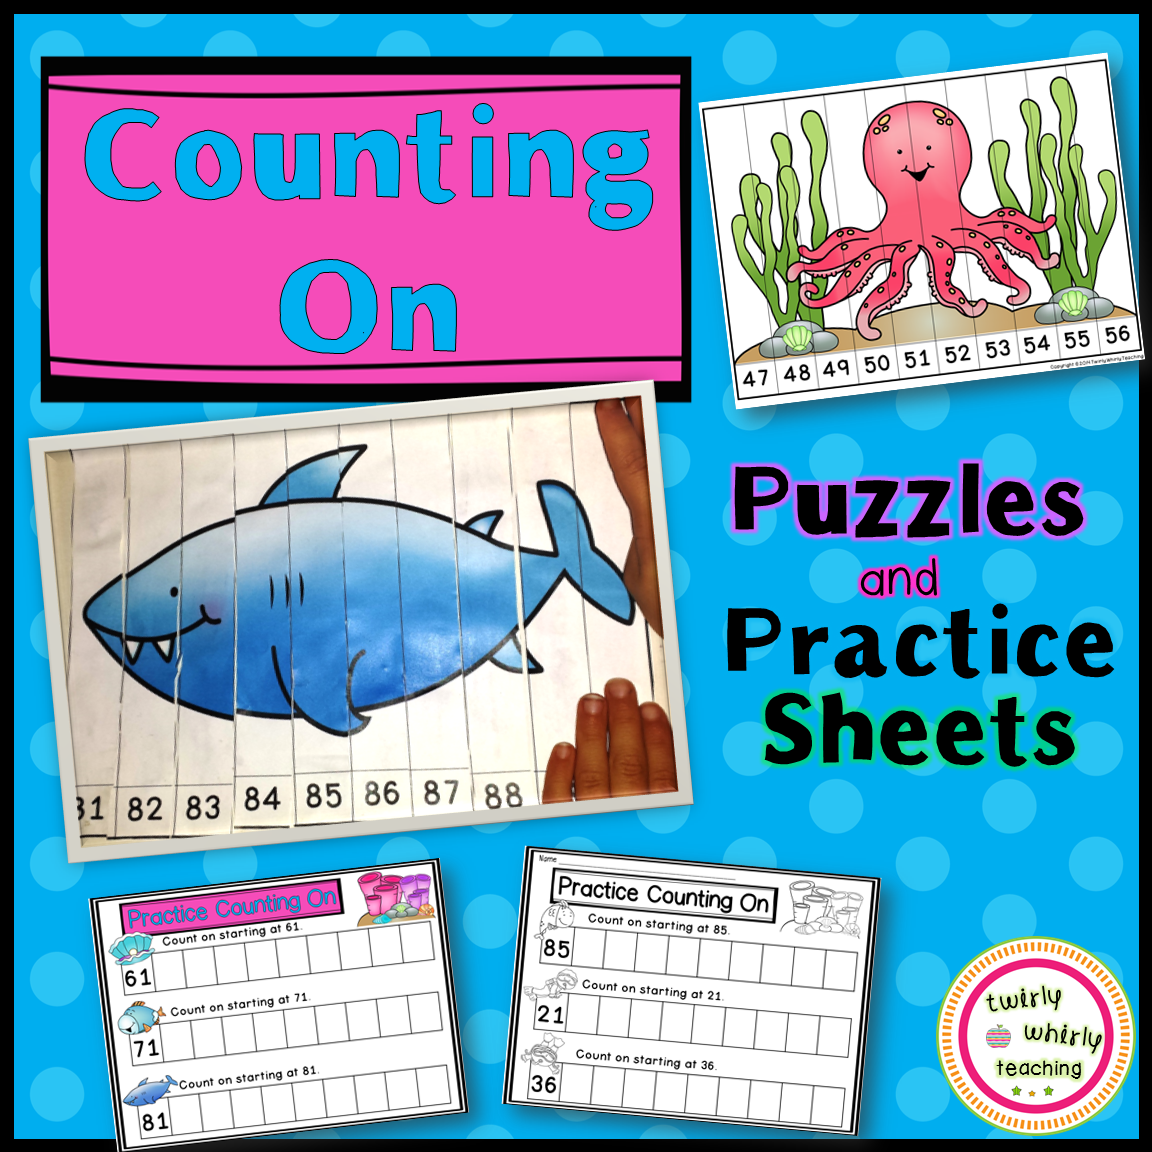 Counting Puzzles 1-100 ocean-themed | Pinterest | Math, Students and ...